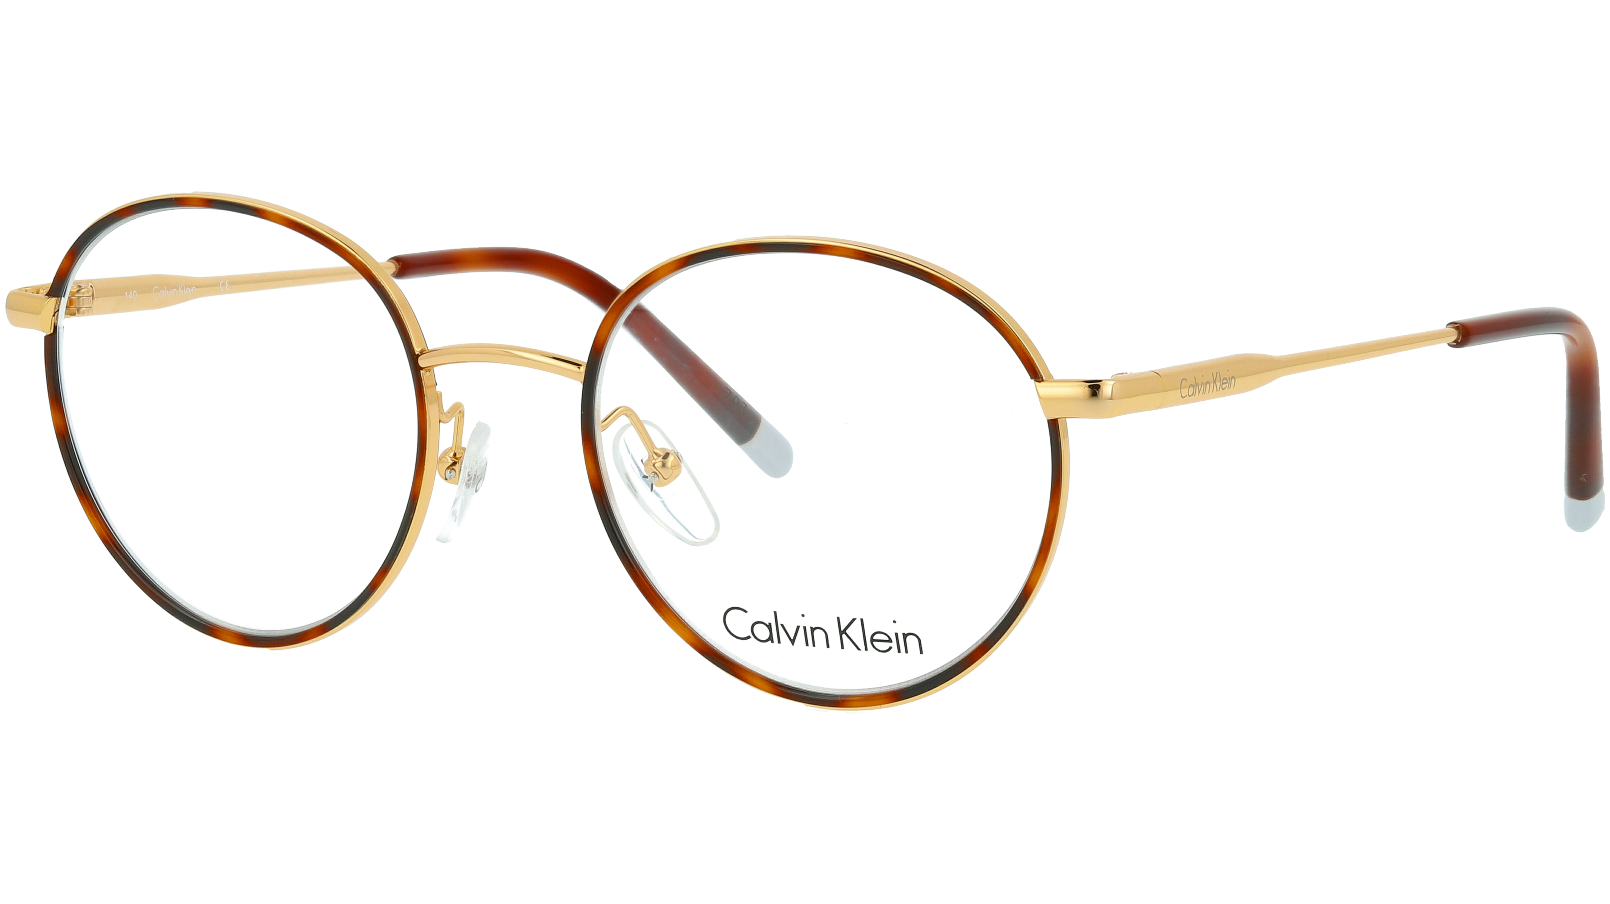 CALVIN KLEIN CK5449 714 50 DARK Glasses